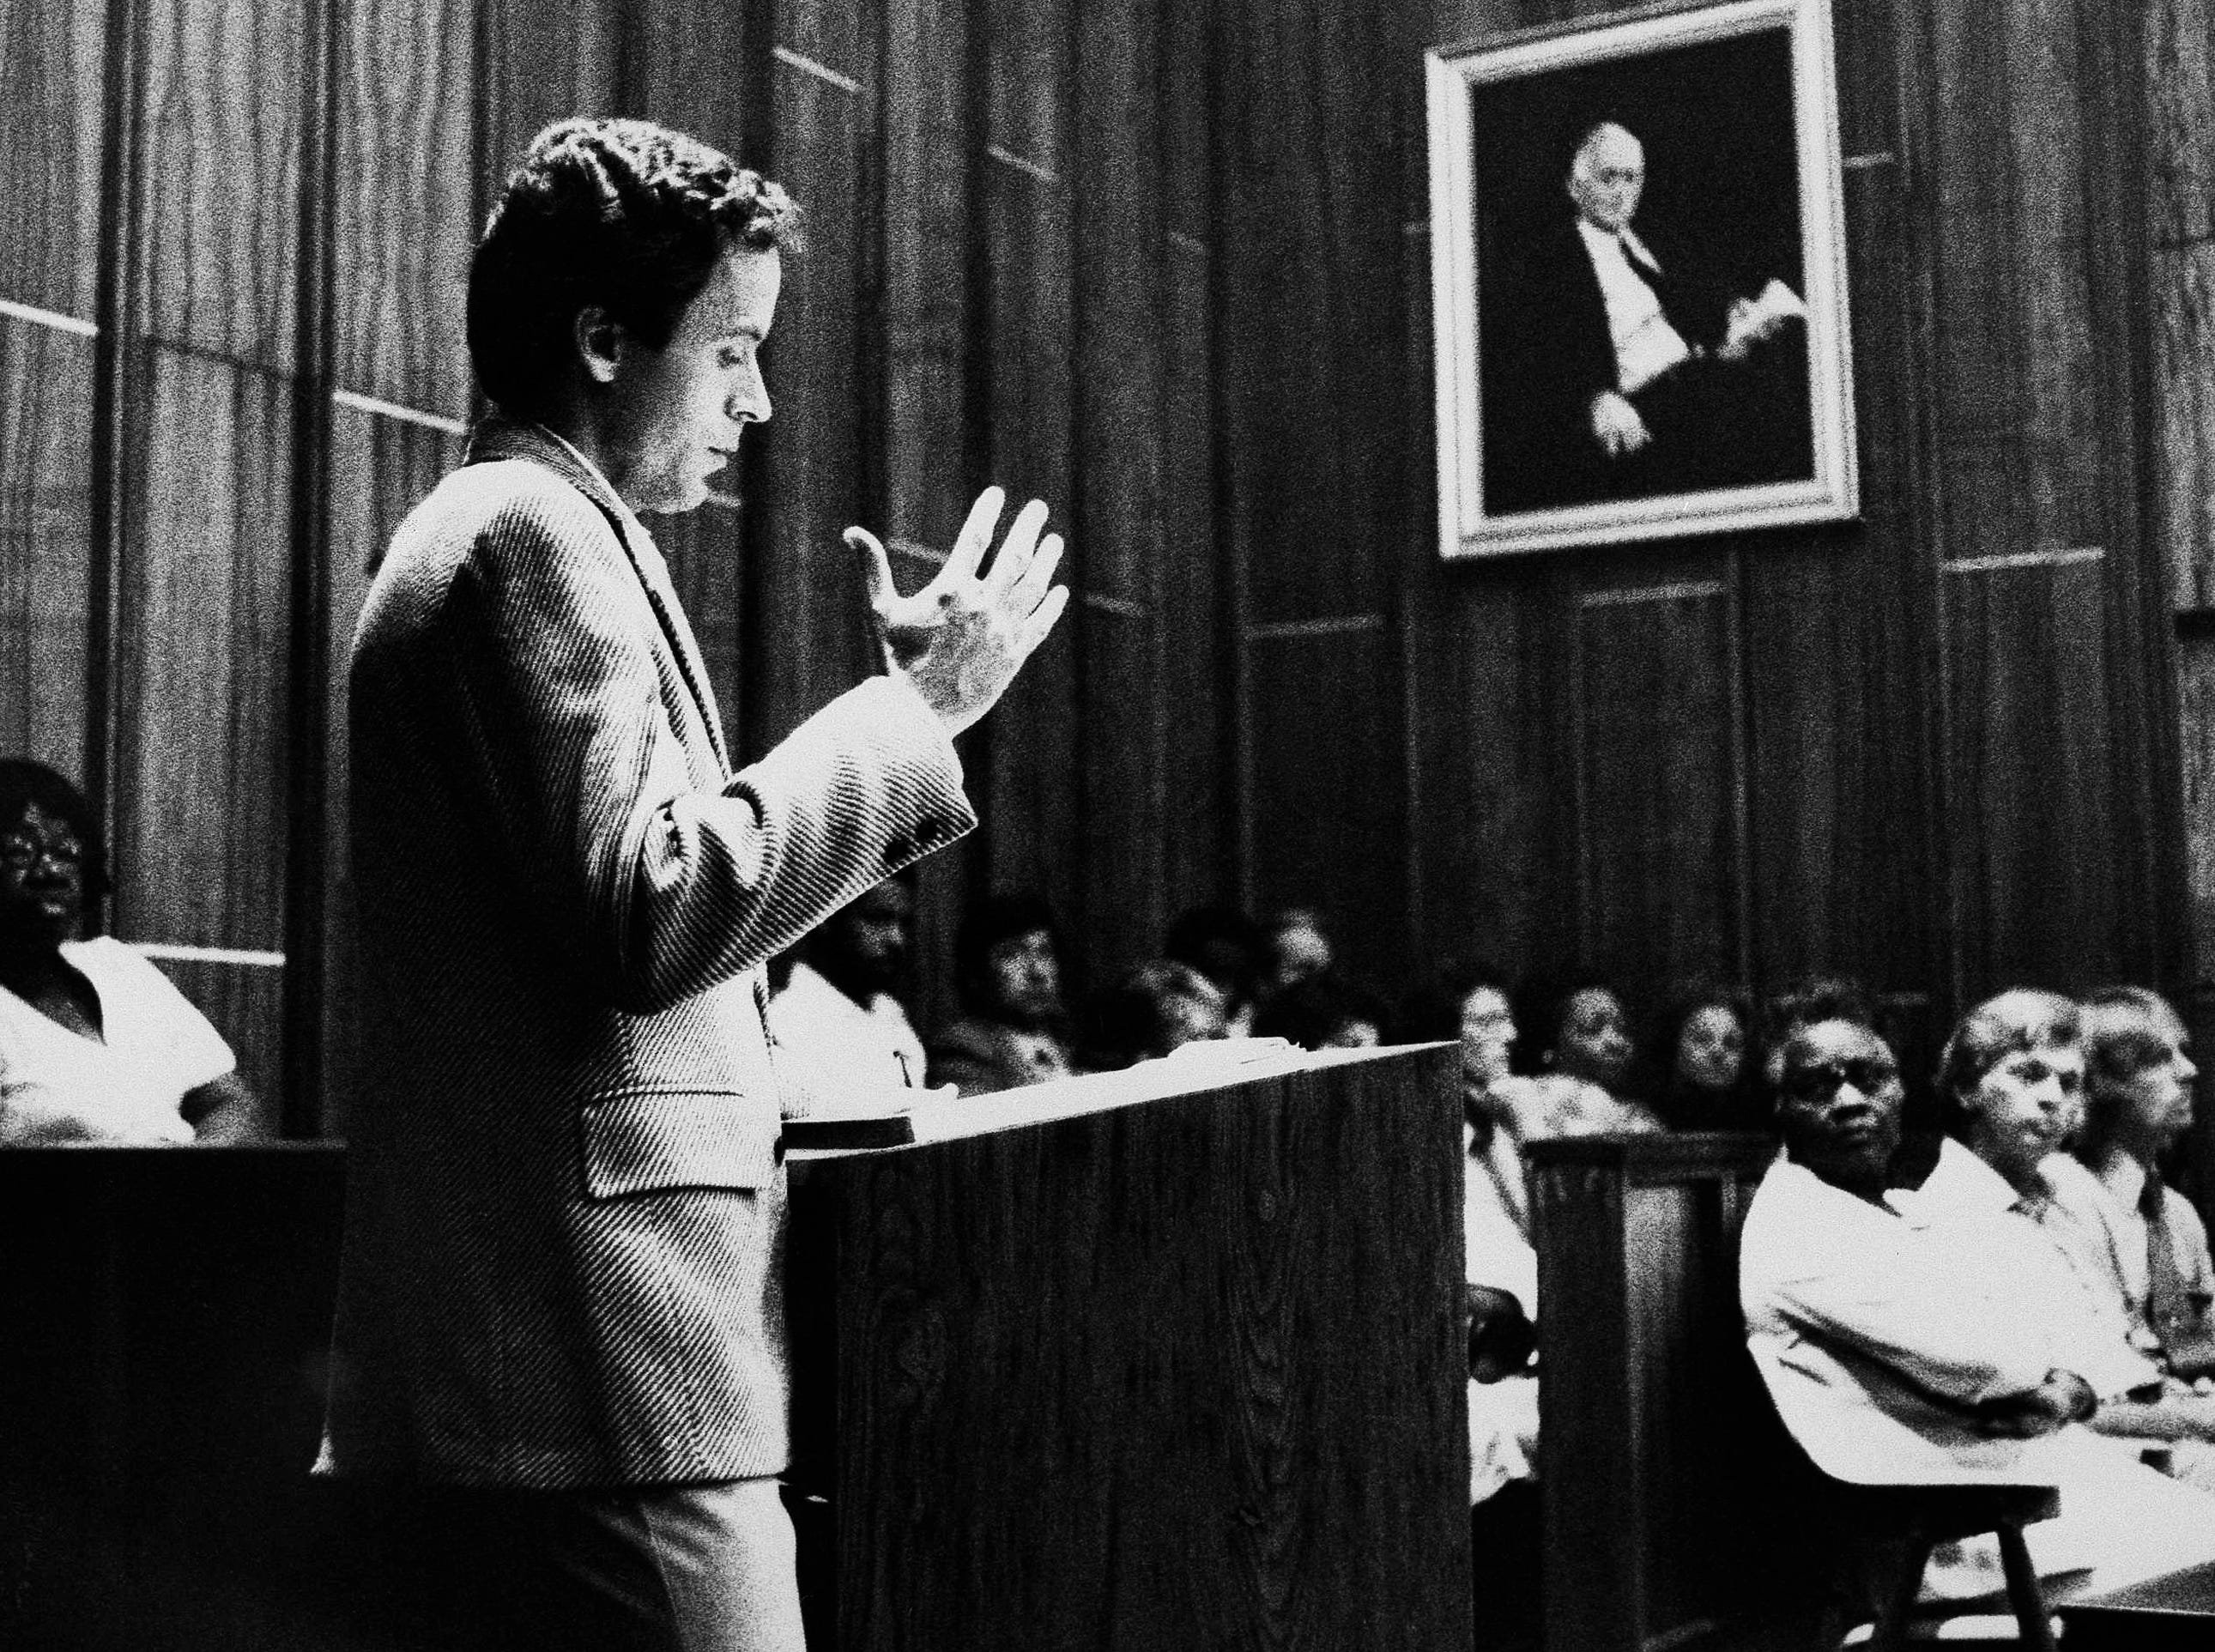 Theodore Bundy gestures as he cross examines witnesses for the prosecution while members of the jury look on in the Miami courtroom, July 9, 1979, where Bundy is on trial for the murders of two Chi Omega sorority sisters.  Bundy is a second year law student is assisting in his own defense.